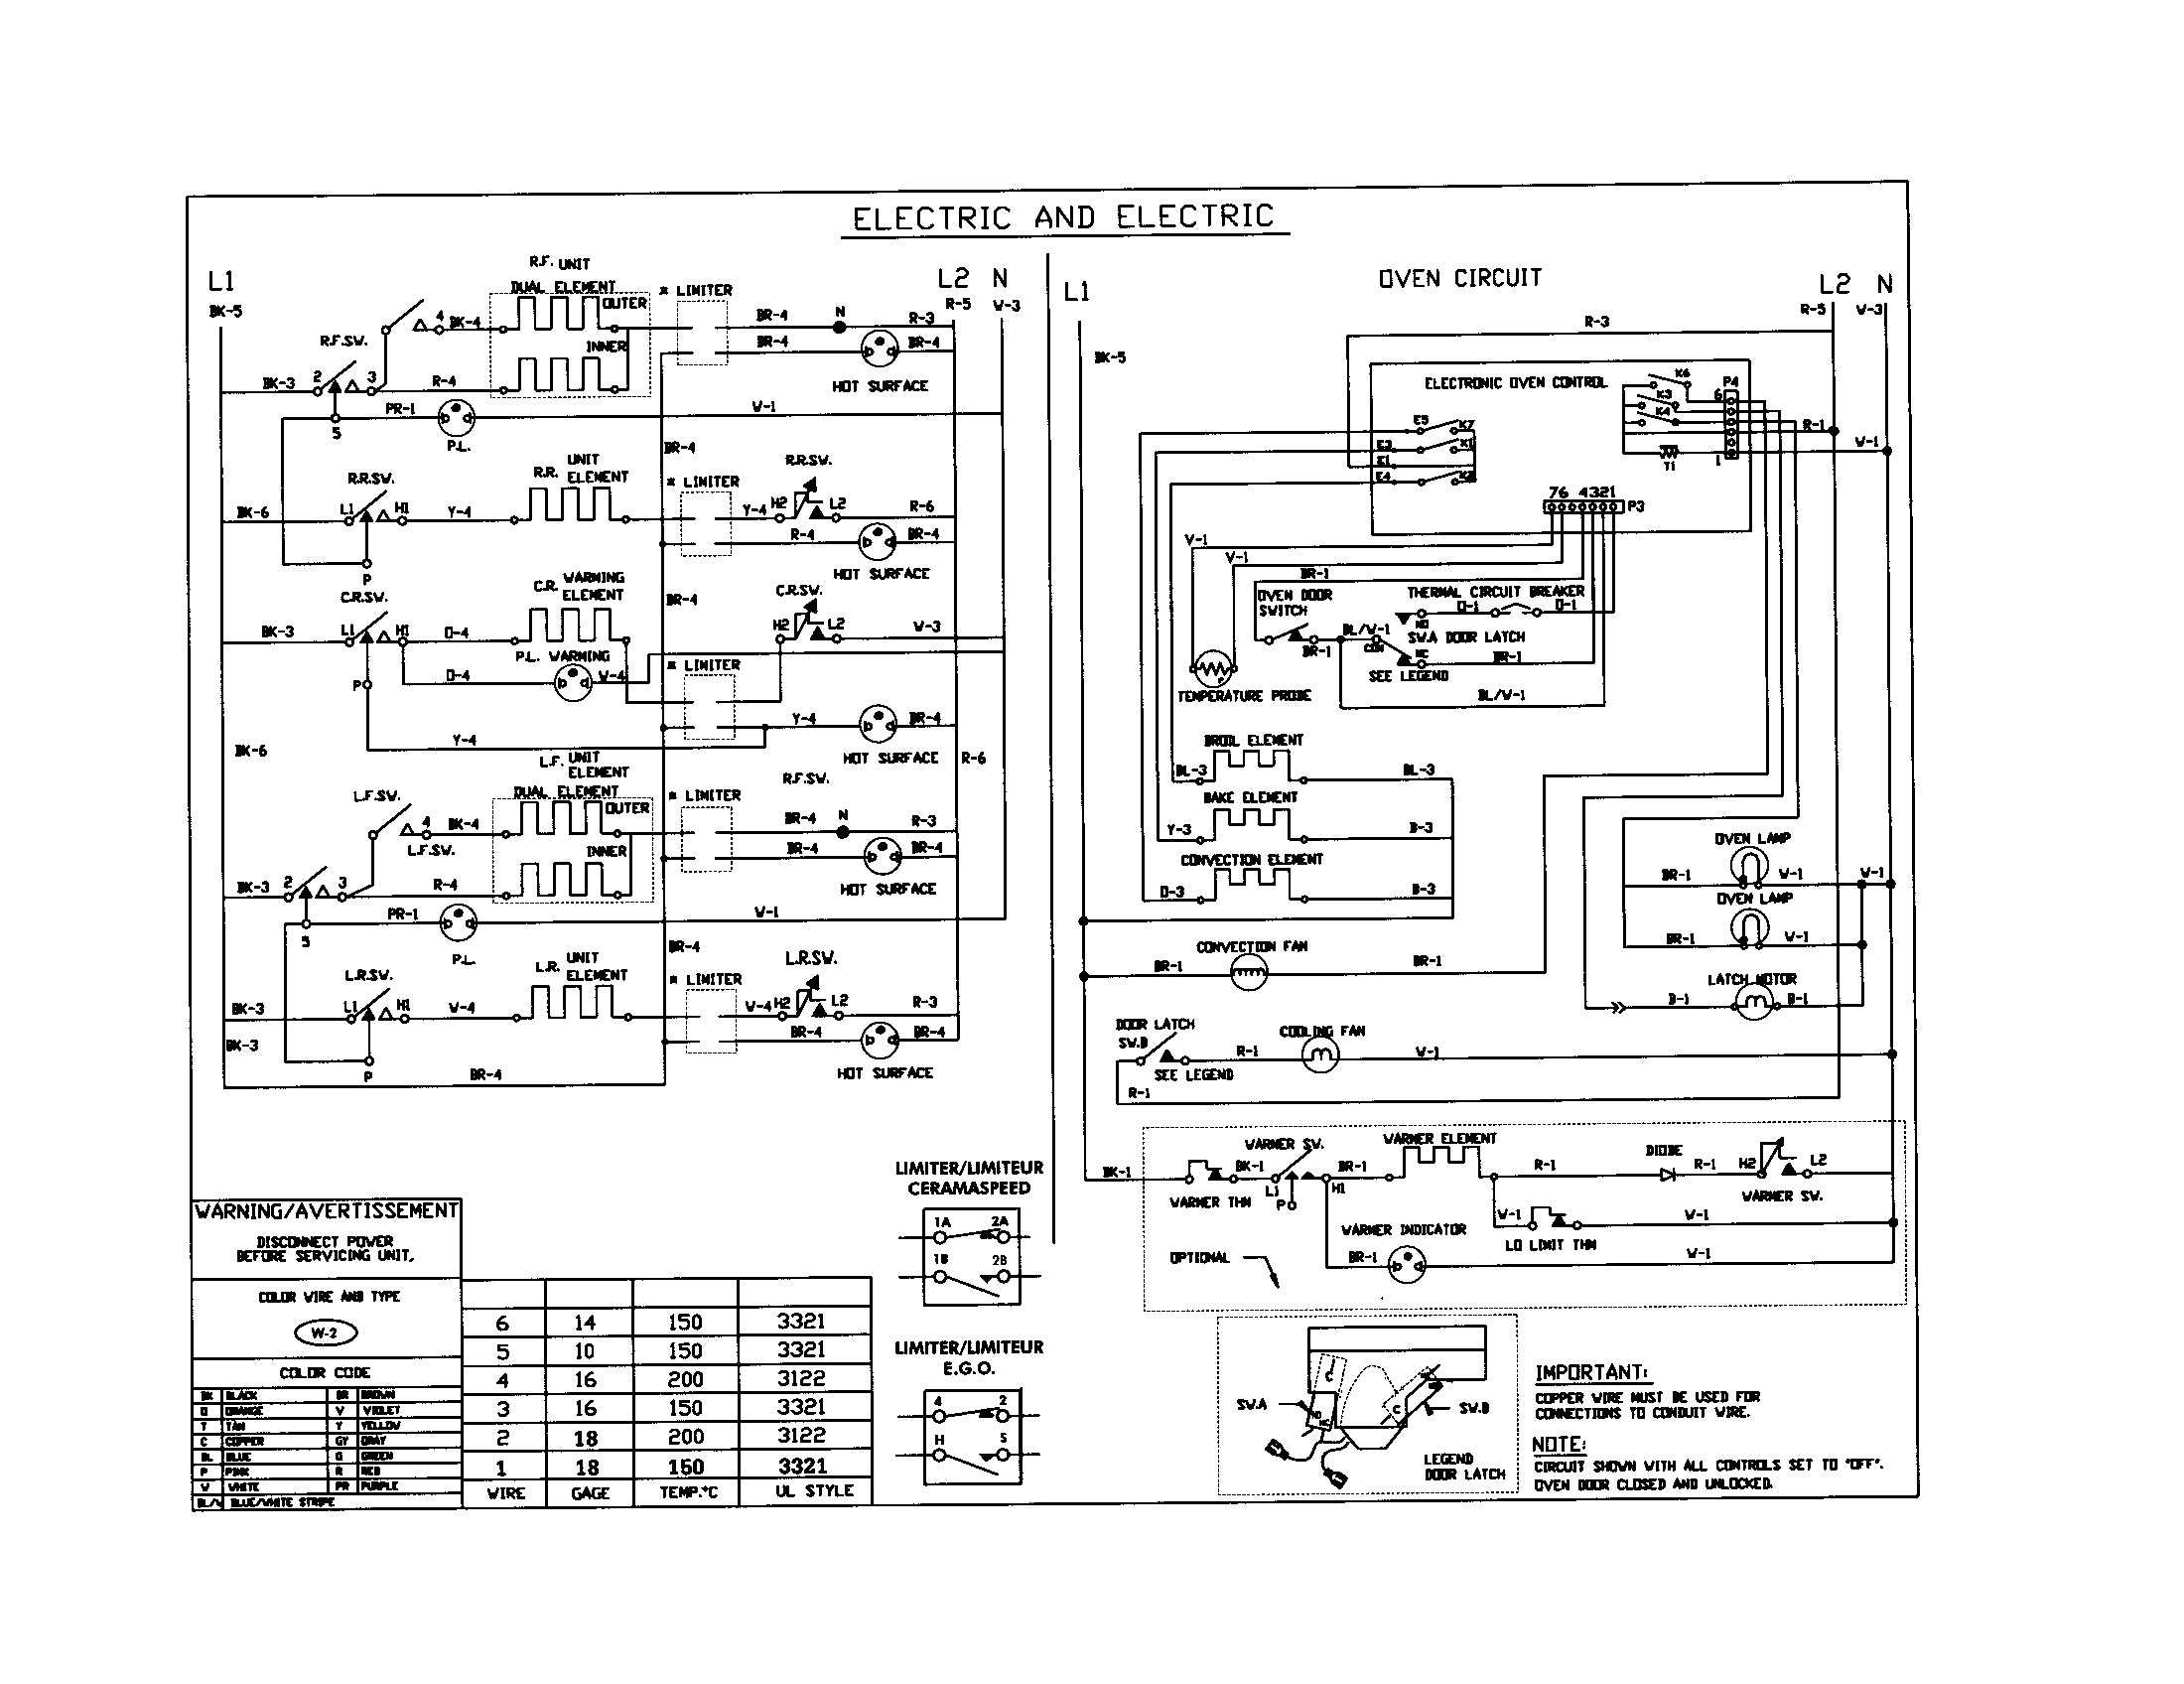 kenmore washer wiring diagram Collection-Kenmore Washer Wiring Diagram Sears whole House Warranty Plan and Wiring Diagram Wiring Diagram Kenmore 14-s